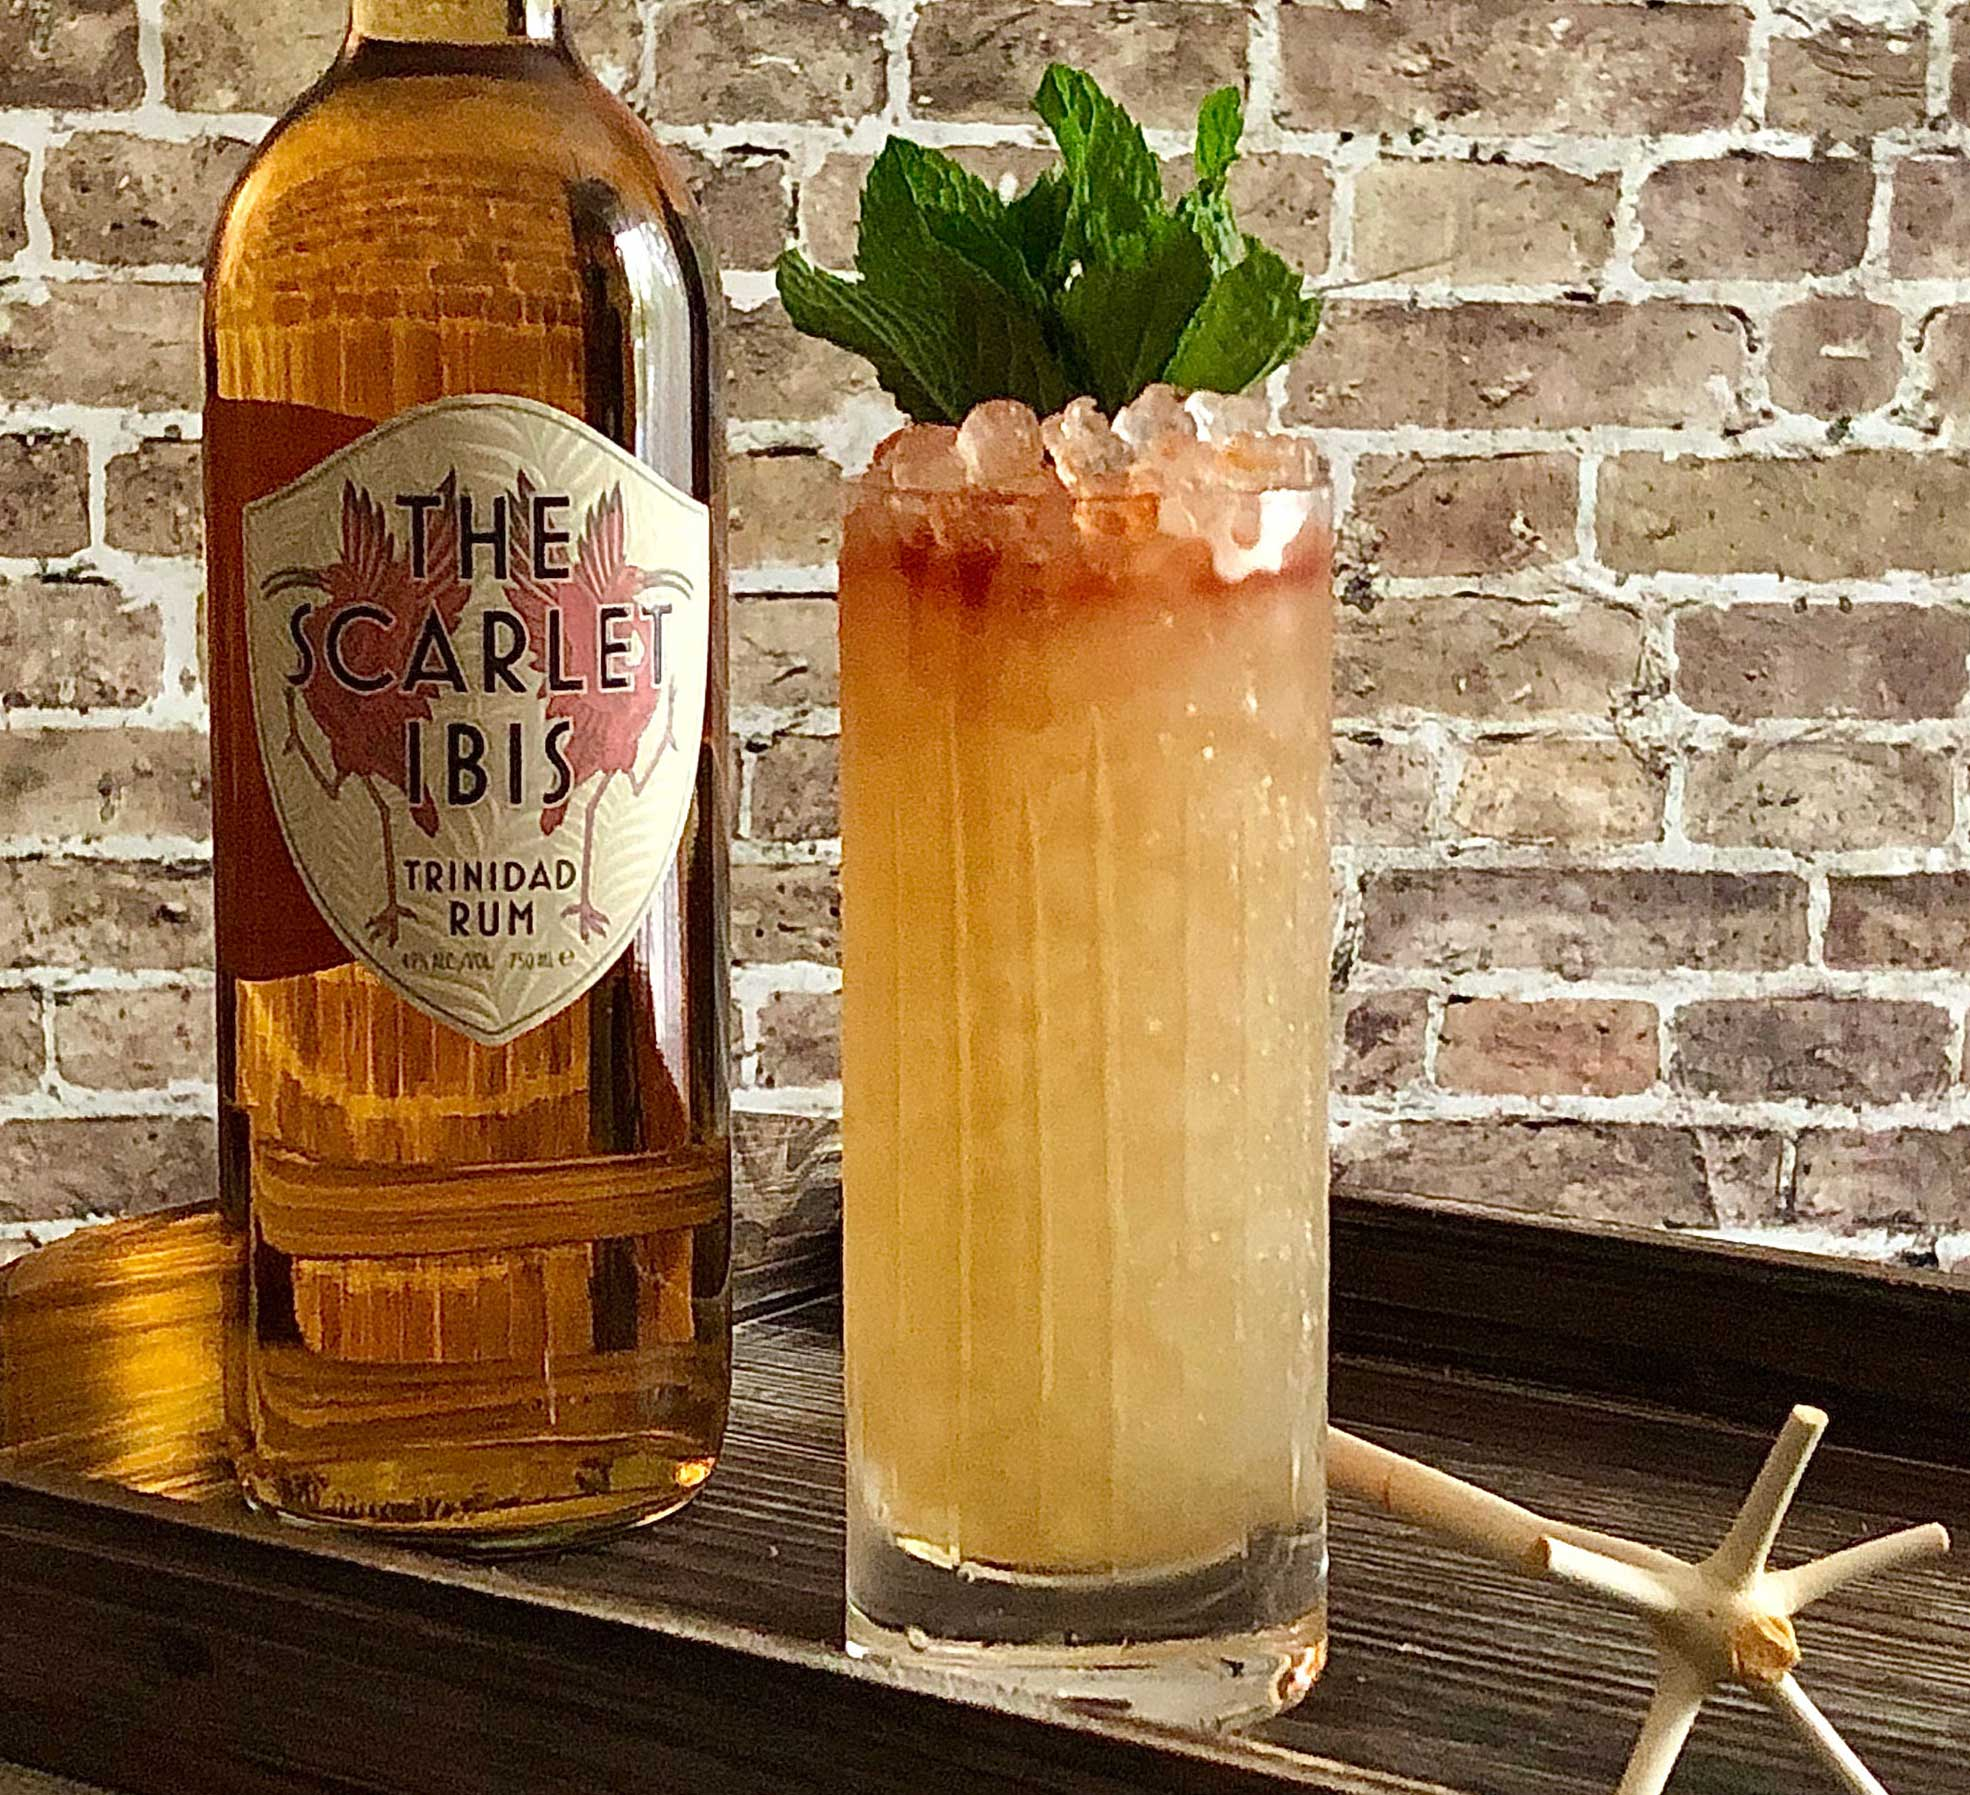 An example of the Queens Park Swizzle, the mixed drink (frappe) featuring The Scarlet Ibis Trinidad Rum, lime juice, rich demerara syrup, and Angostura bitters; photo by Lee Edwards